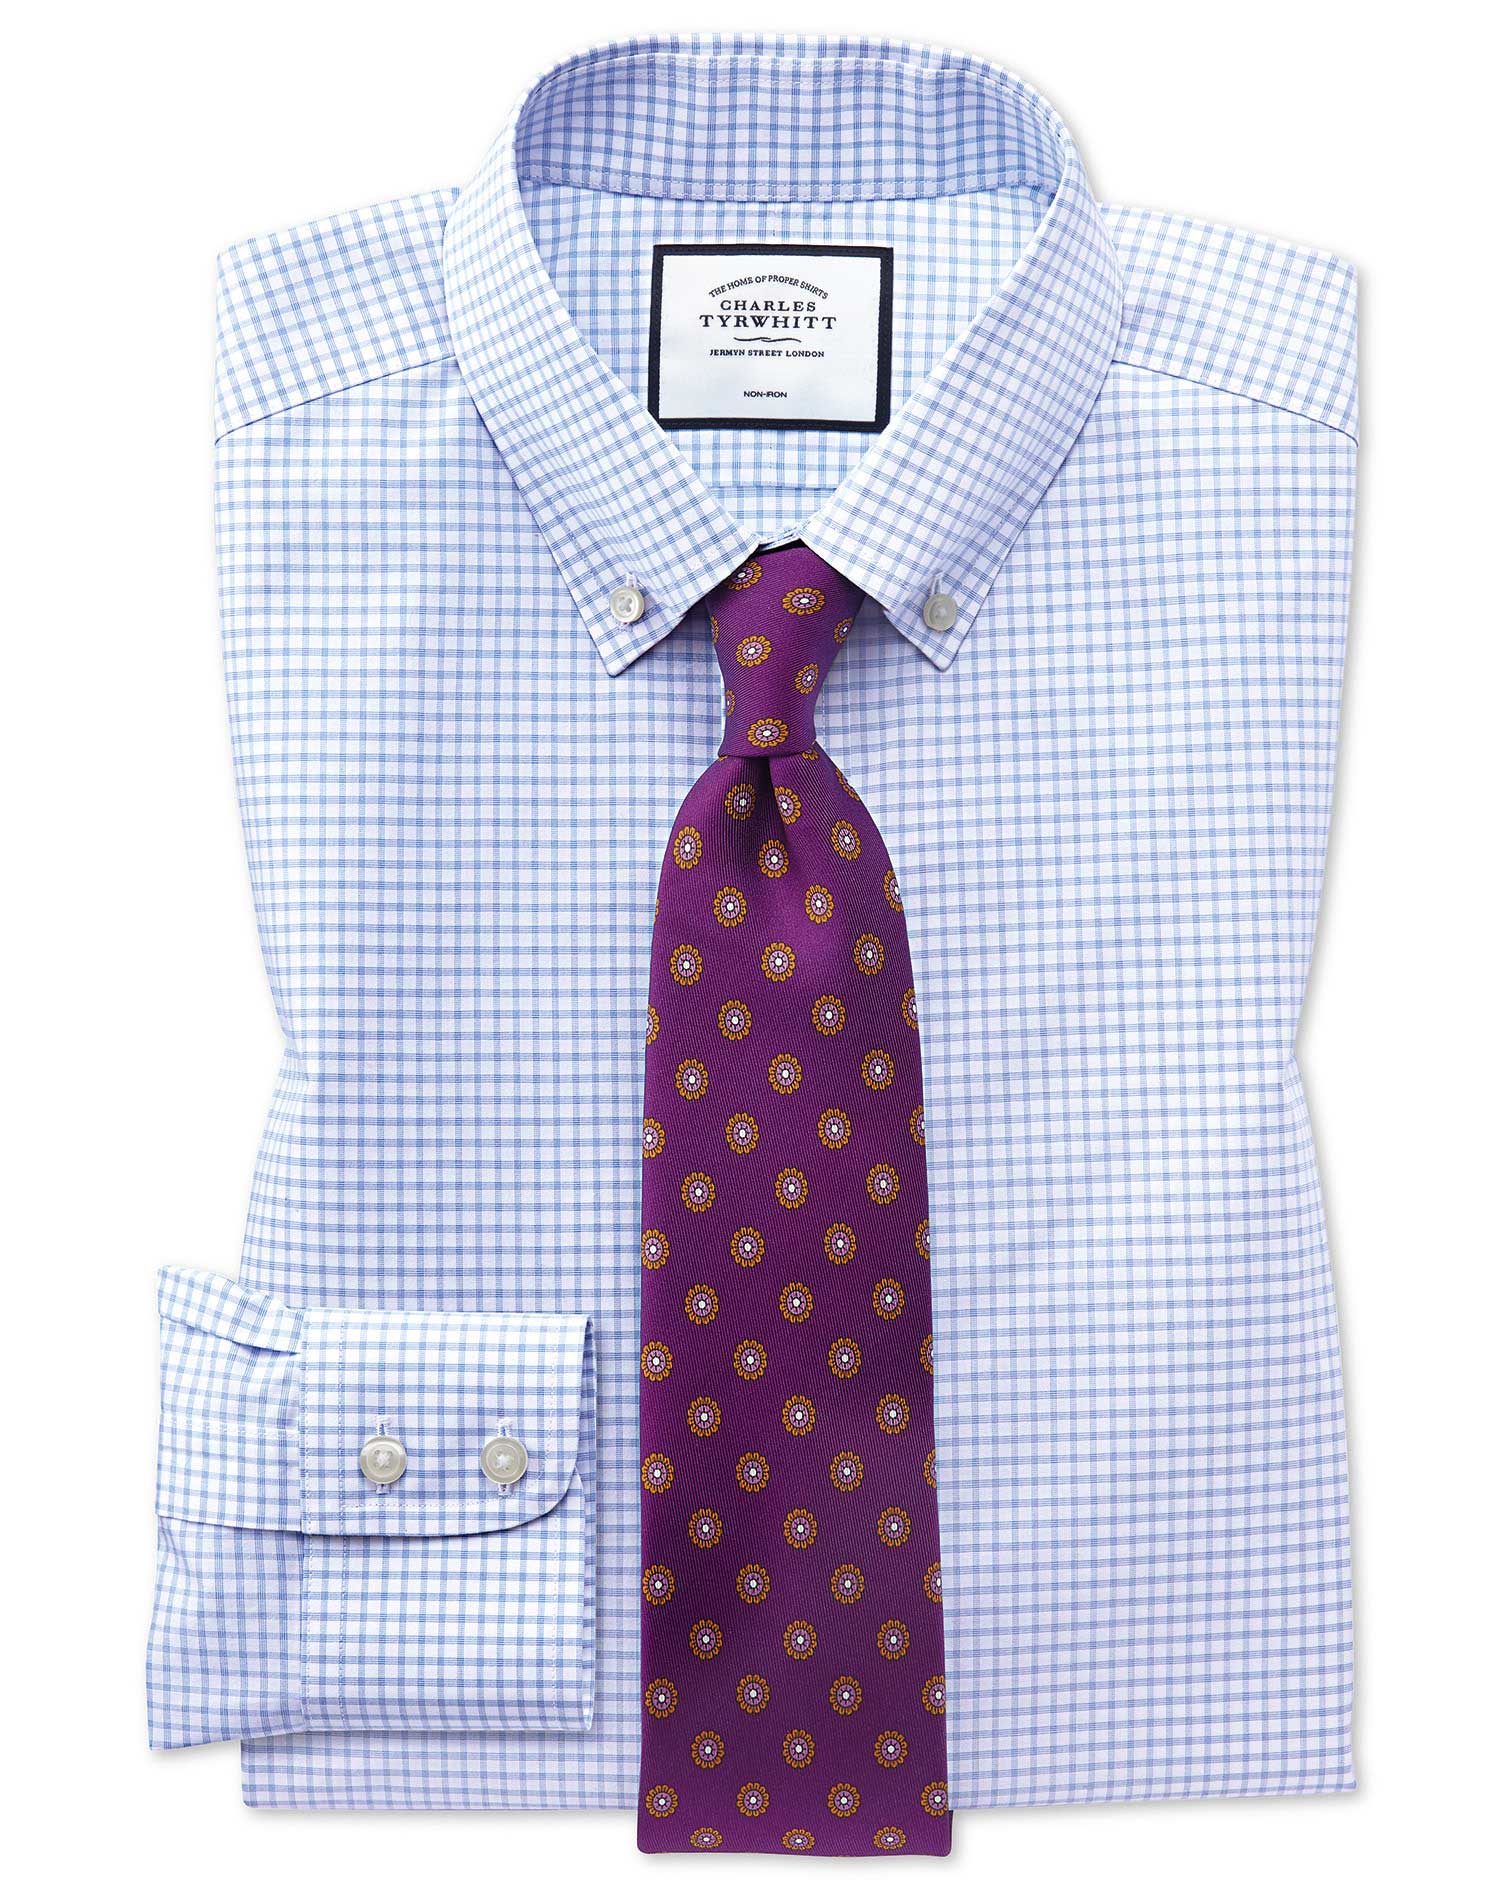 Extra Slim Fit Button-Down Non-Iron Sky Blue Windowpane Check Cotton Formal Shirt Single Cuff Size 1